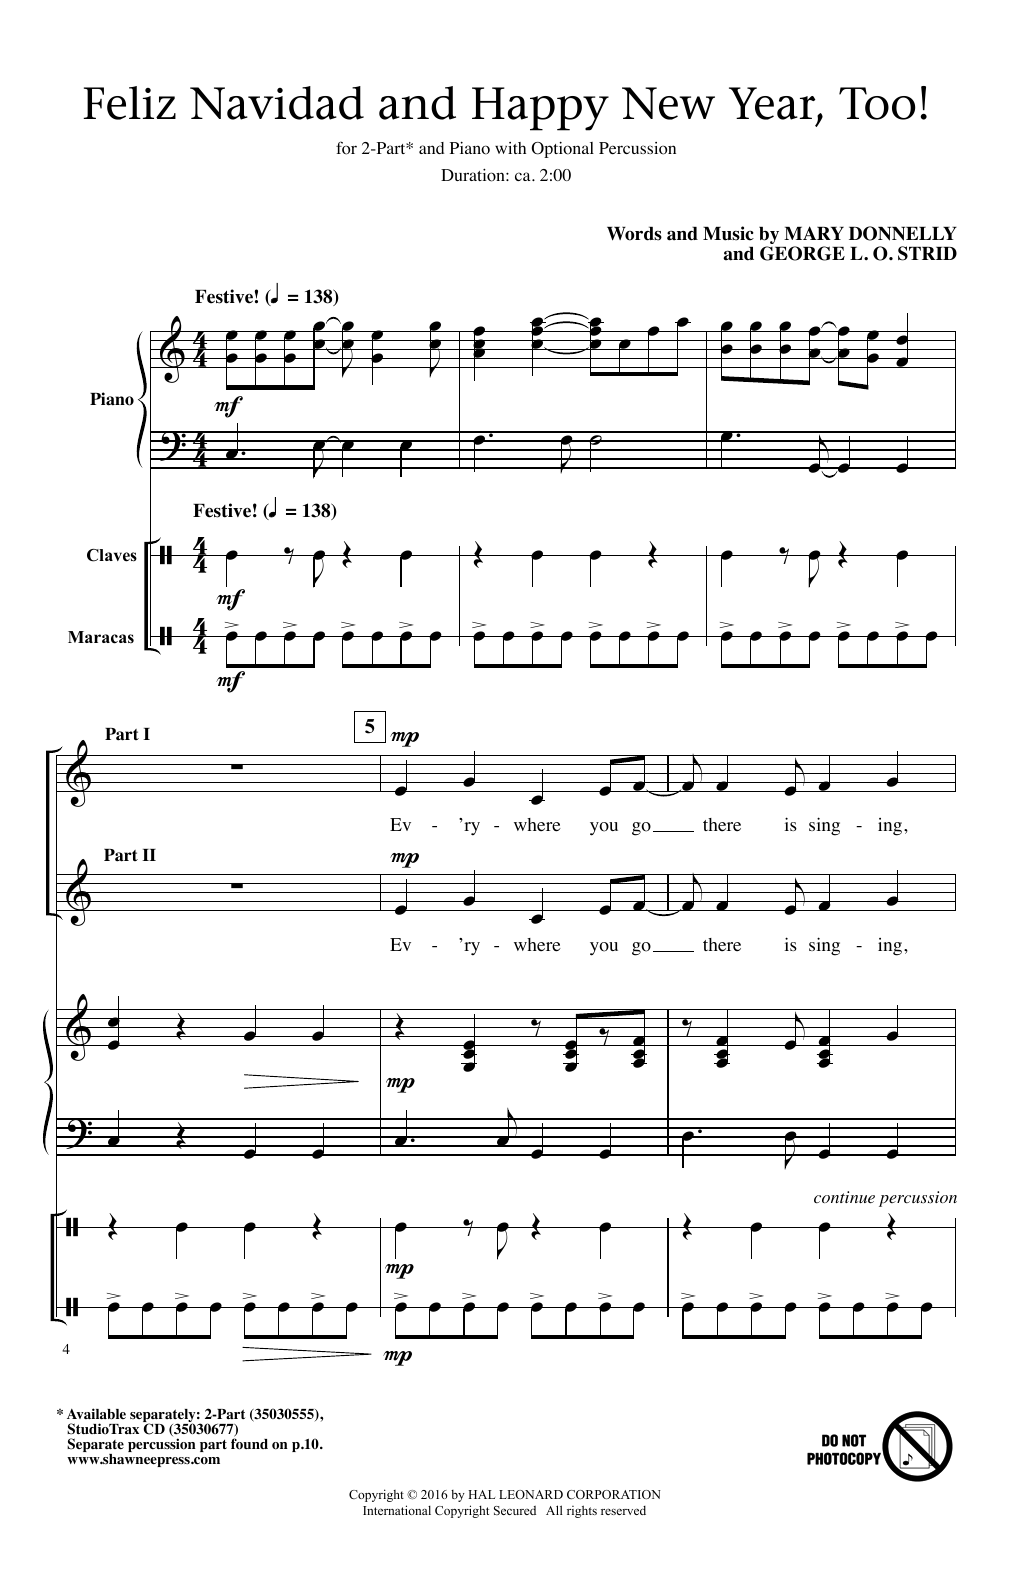 Mary Donnelly Feliz Navidad And Happy New Year, Too! sheet music notes and chords. Download Printable PDF.